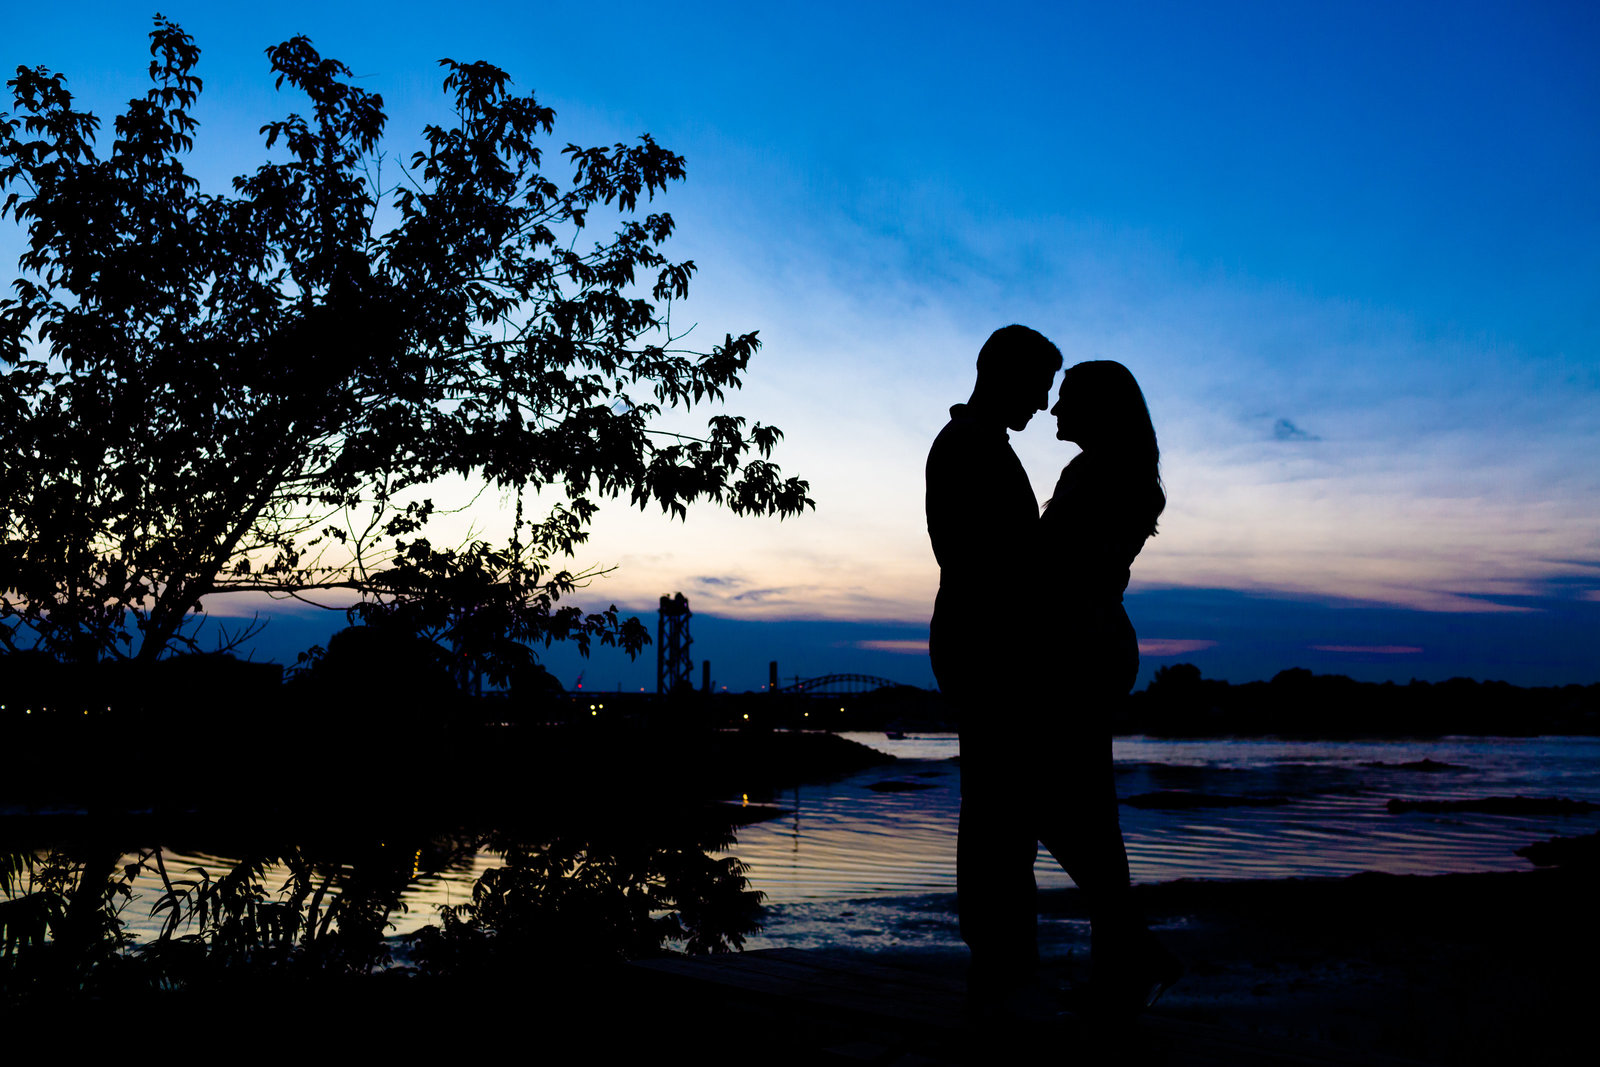 Portsmouth-New-Hampshire-Wedding-Photographers-Engagement-Outdoor-silhouette-Pierce-Island-Urban-I-AM-SARAH-V-Photography-Photo